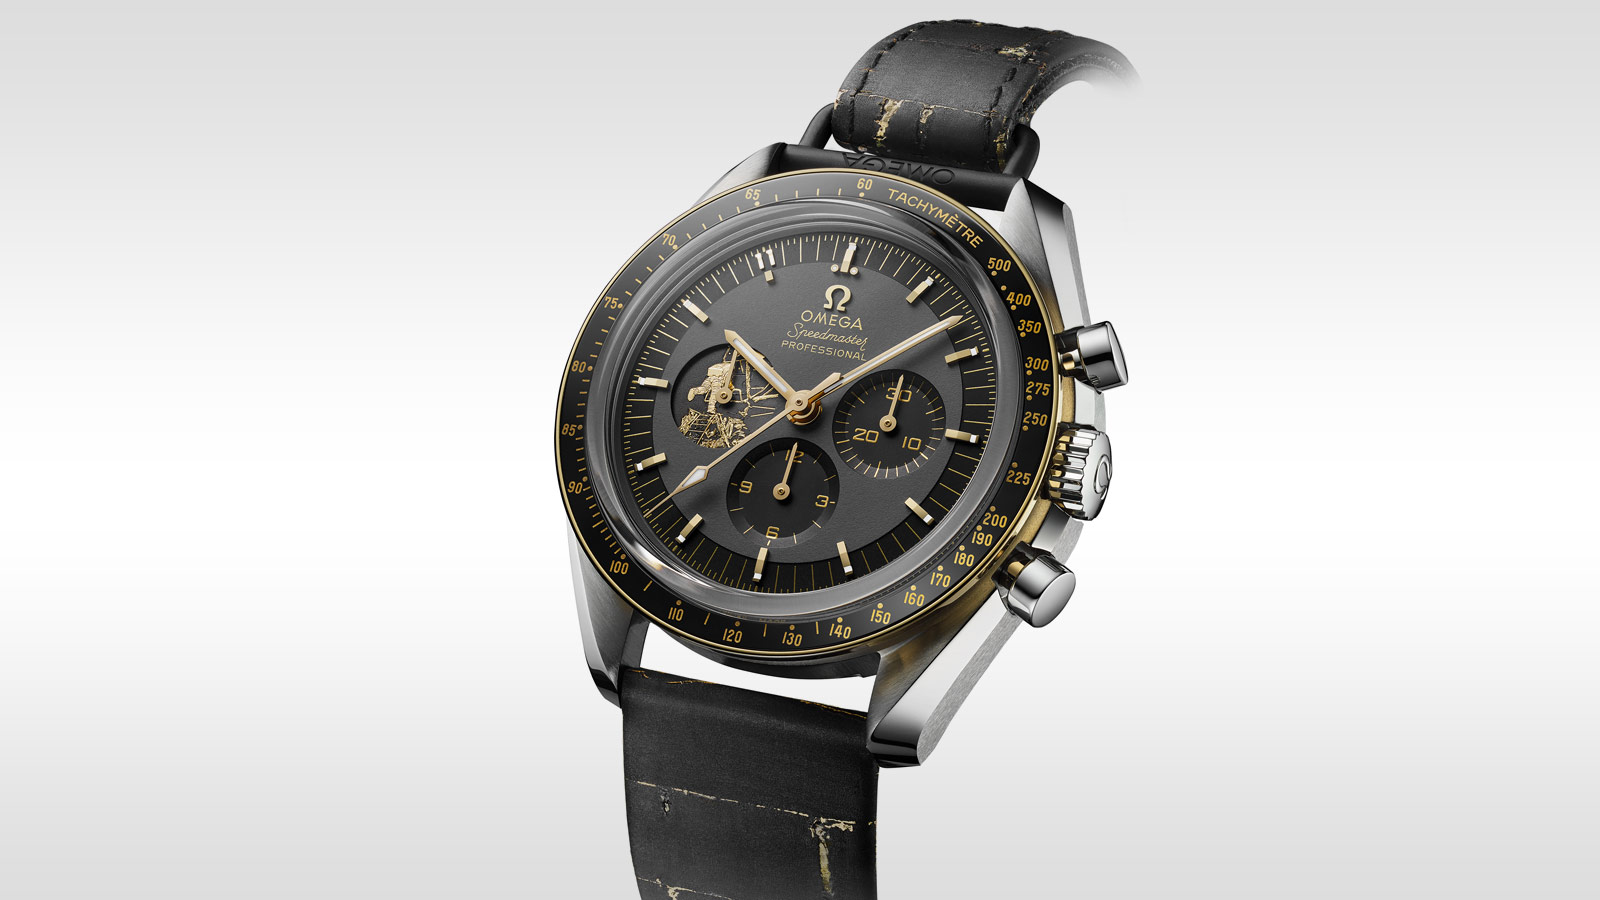 Speedmaster Moonwatch Moonwatch Anniversary Limited Series - 310.20.42.50.01.001 - Visualizzare 1